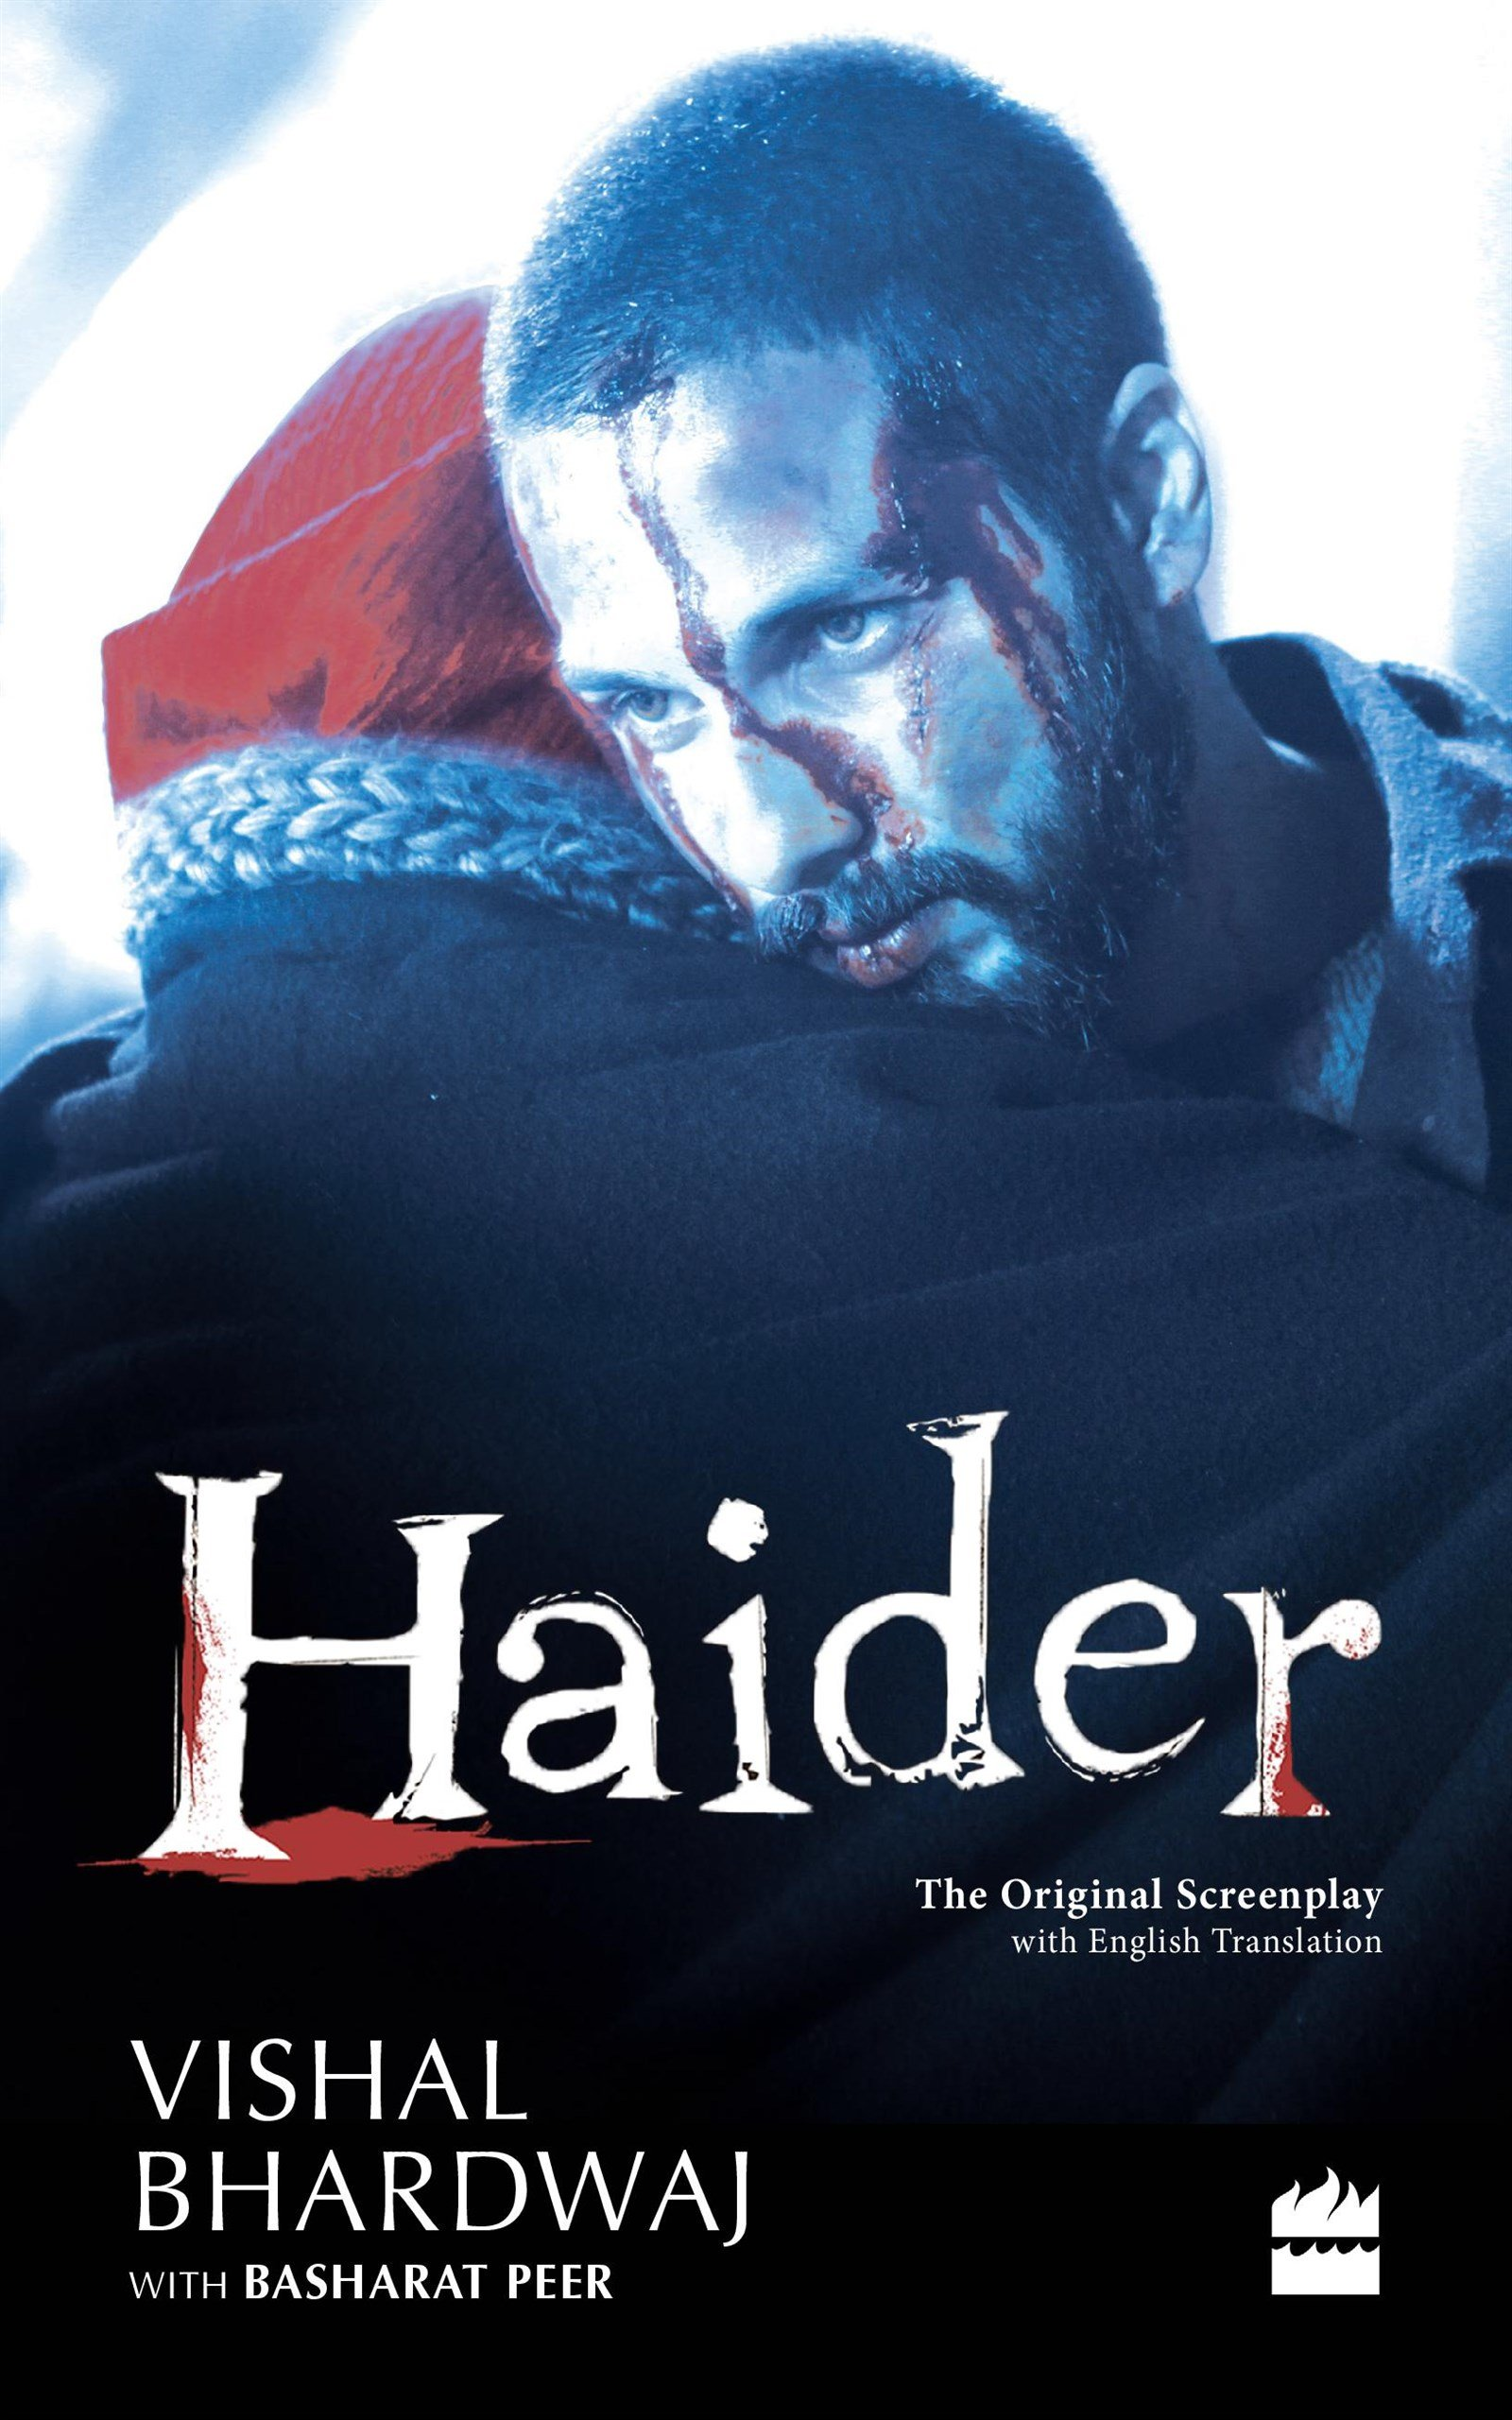 Buy Haider: The Original Screenplay with English Translation Book ...Buy Haider: The Original Screenplay with English Translation Book Online at  Low Prices in India | Haider: The Original Screenplay with English  Translation ...